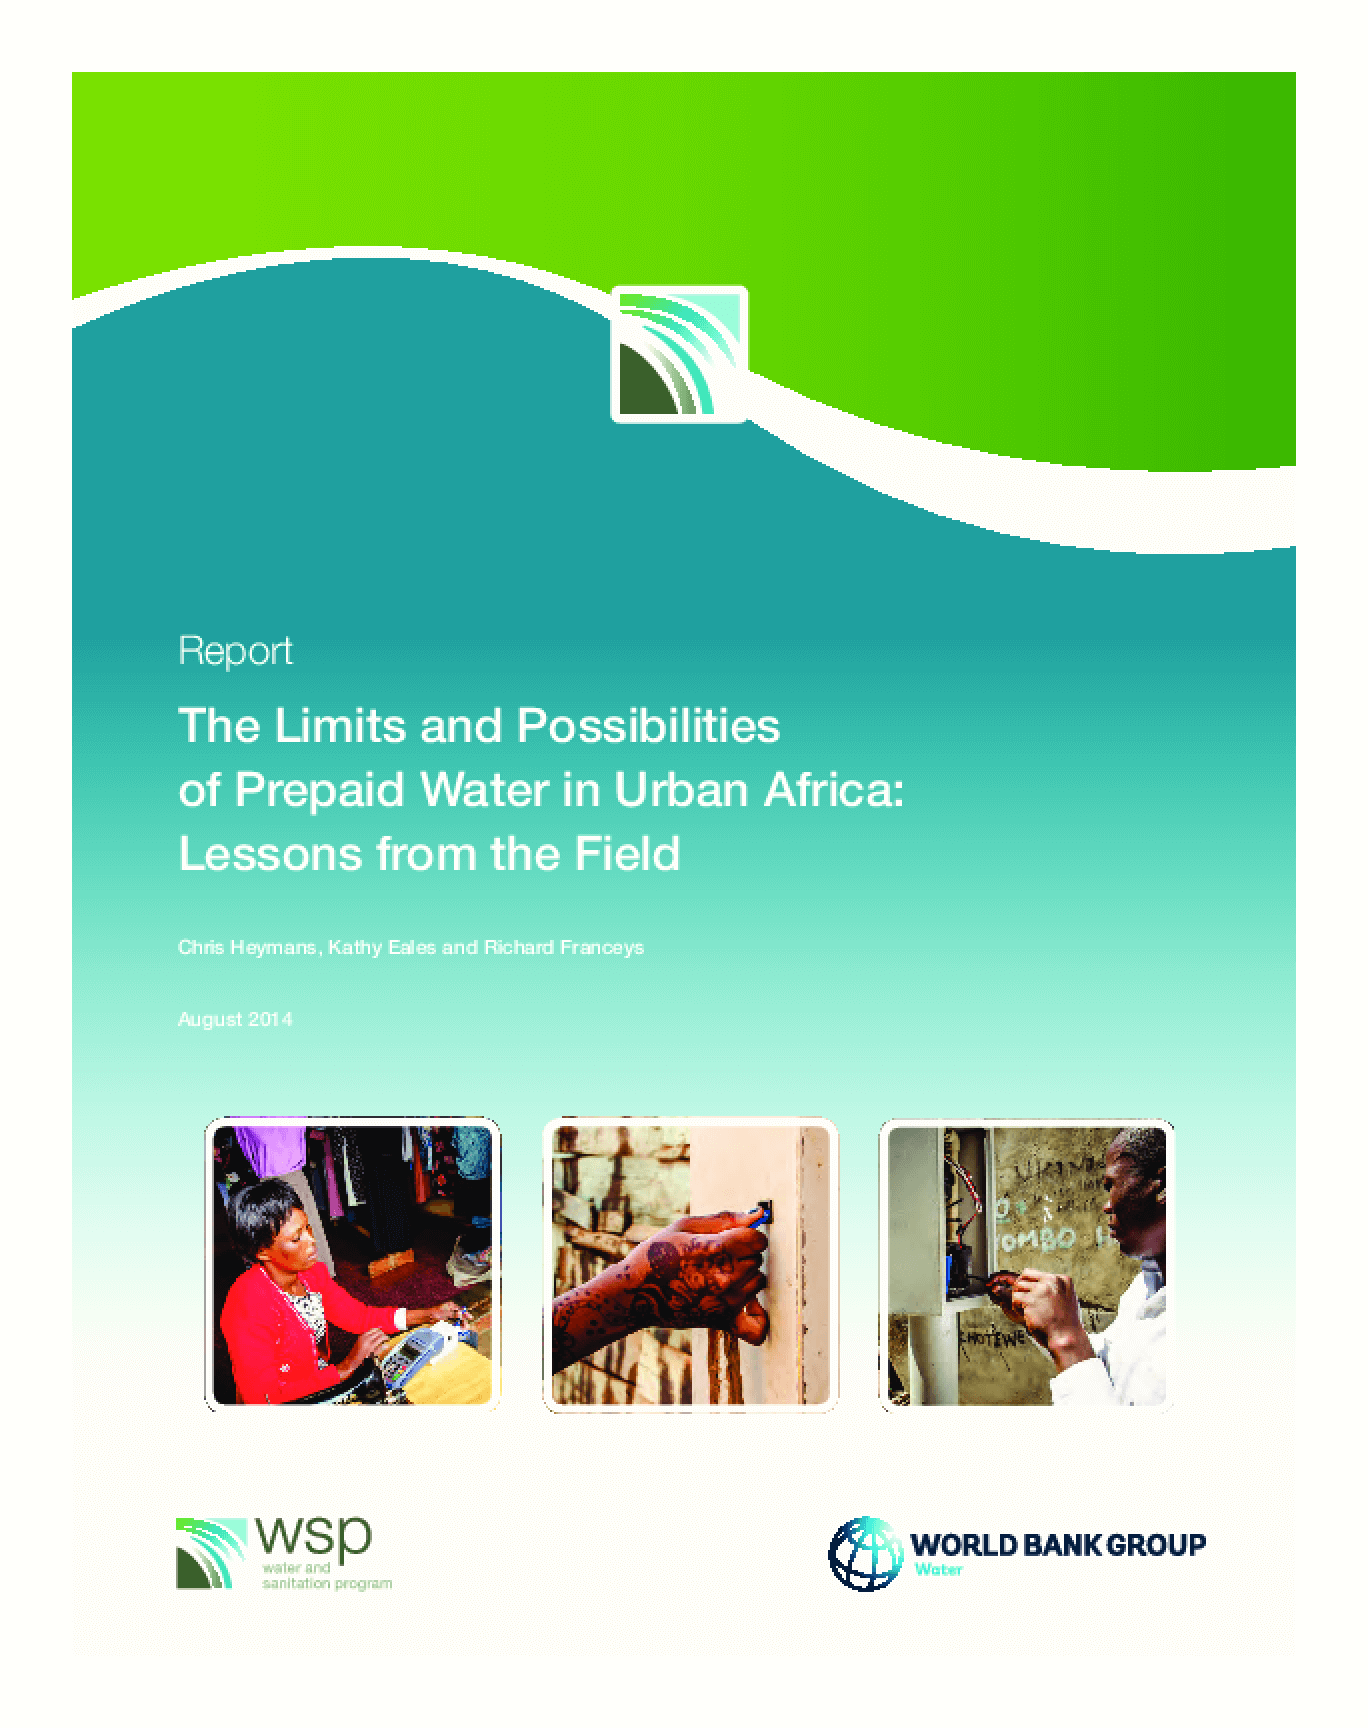 The Limits and Possibilities of Prepaid Water in Urban Africa: Lessons From the Field